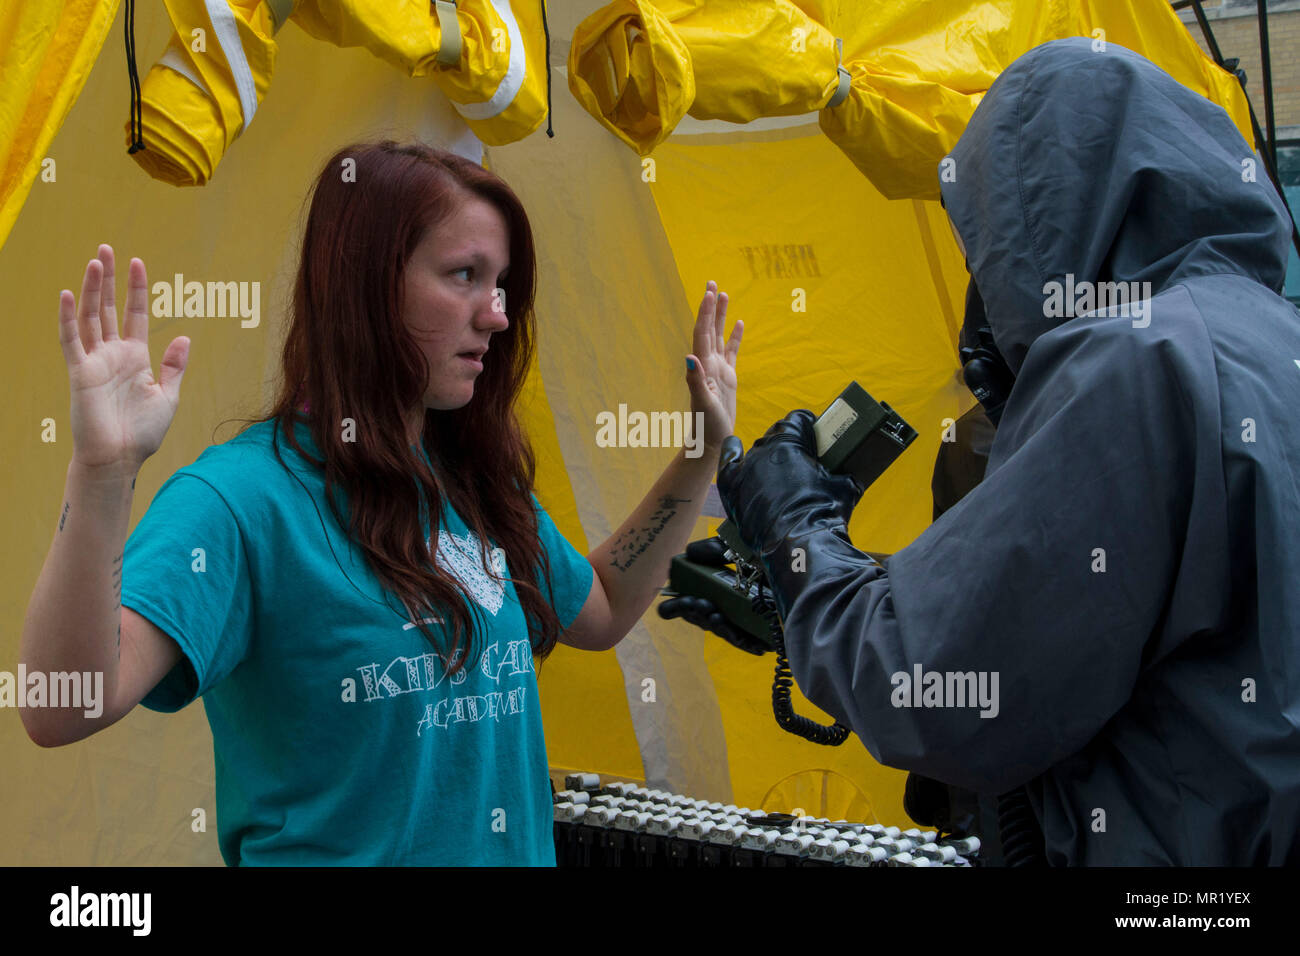 Civilian role player Cheyenne Patton, a North Vernon, Ind., resident, goes through decontamination following a mock nuclear disaster at the Muscatatuck Urban Training Center, April 28, 2017. The U.S. Army Reserve's Guardian Response 2017 is a multi-component training exercise designed to validate more than 4,000 service members in Defense Support of Civil Authorities in the event of a Chemical, Biological, Radiological and Nuclear catastrophe. This year's exercise simulated an improvised nuclear device explosion with a source region electromagnetic pulse out to more than four miles. The 84th T - Stock Image